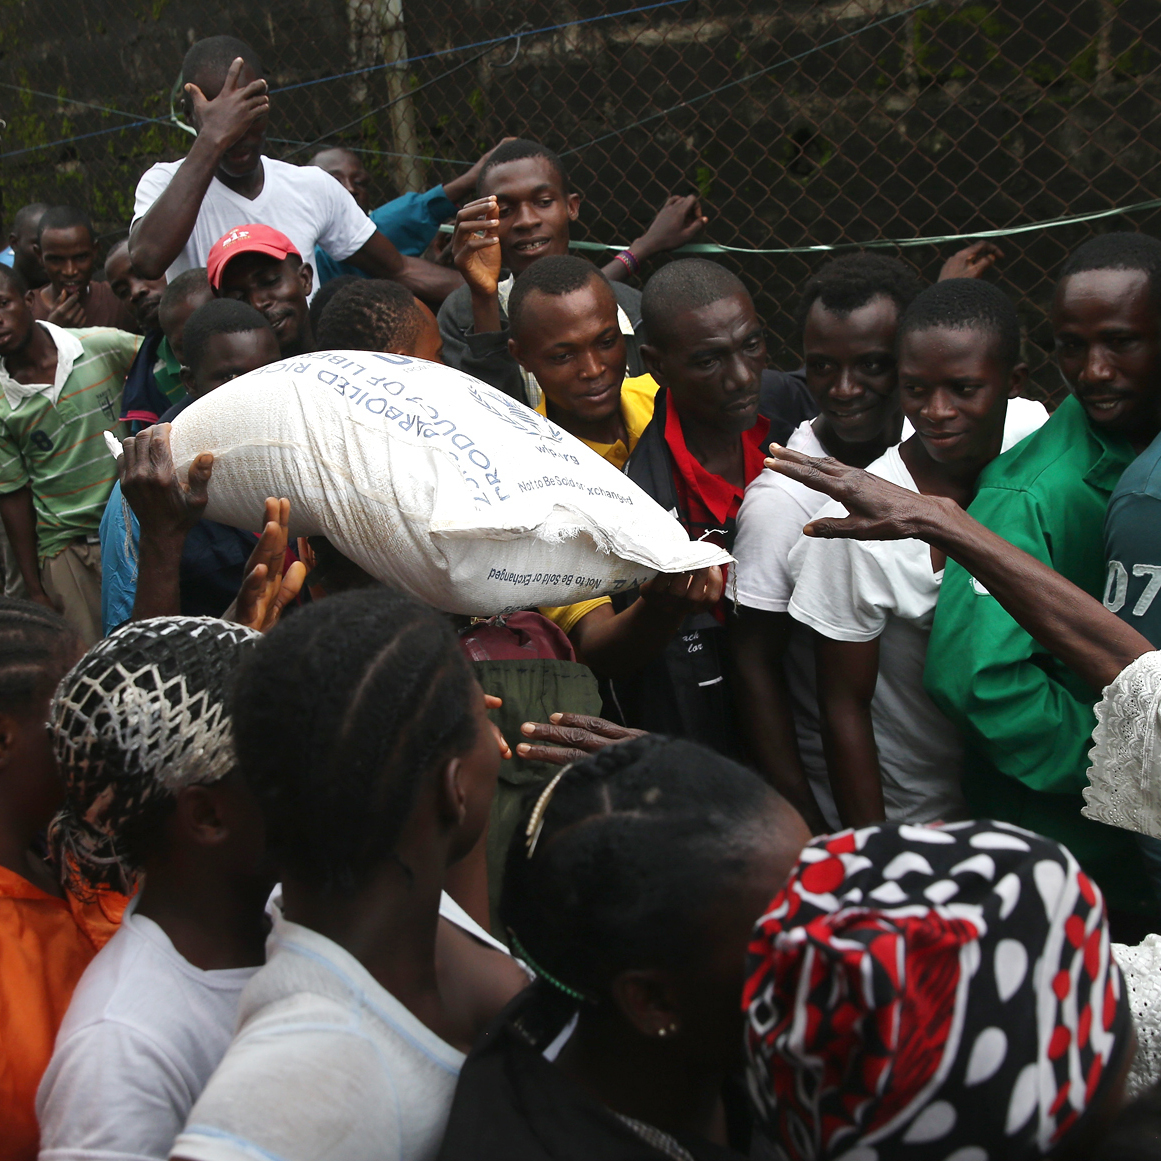 The Liberian government delivered bags of rice, beans and cooking oil to residents of the West Point slum in Monrovia. The community has been quarantined due to the Ebola outbreak in the area.